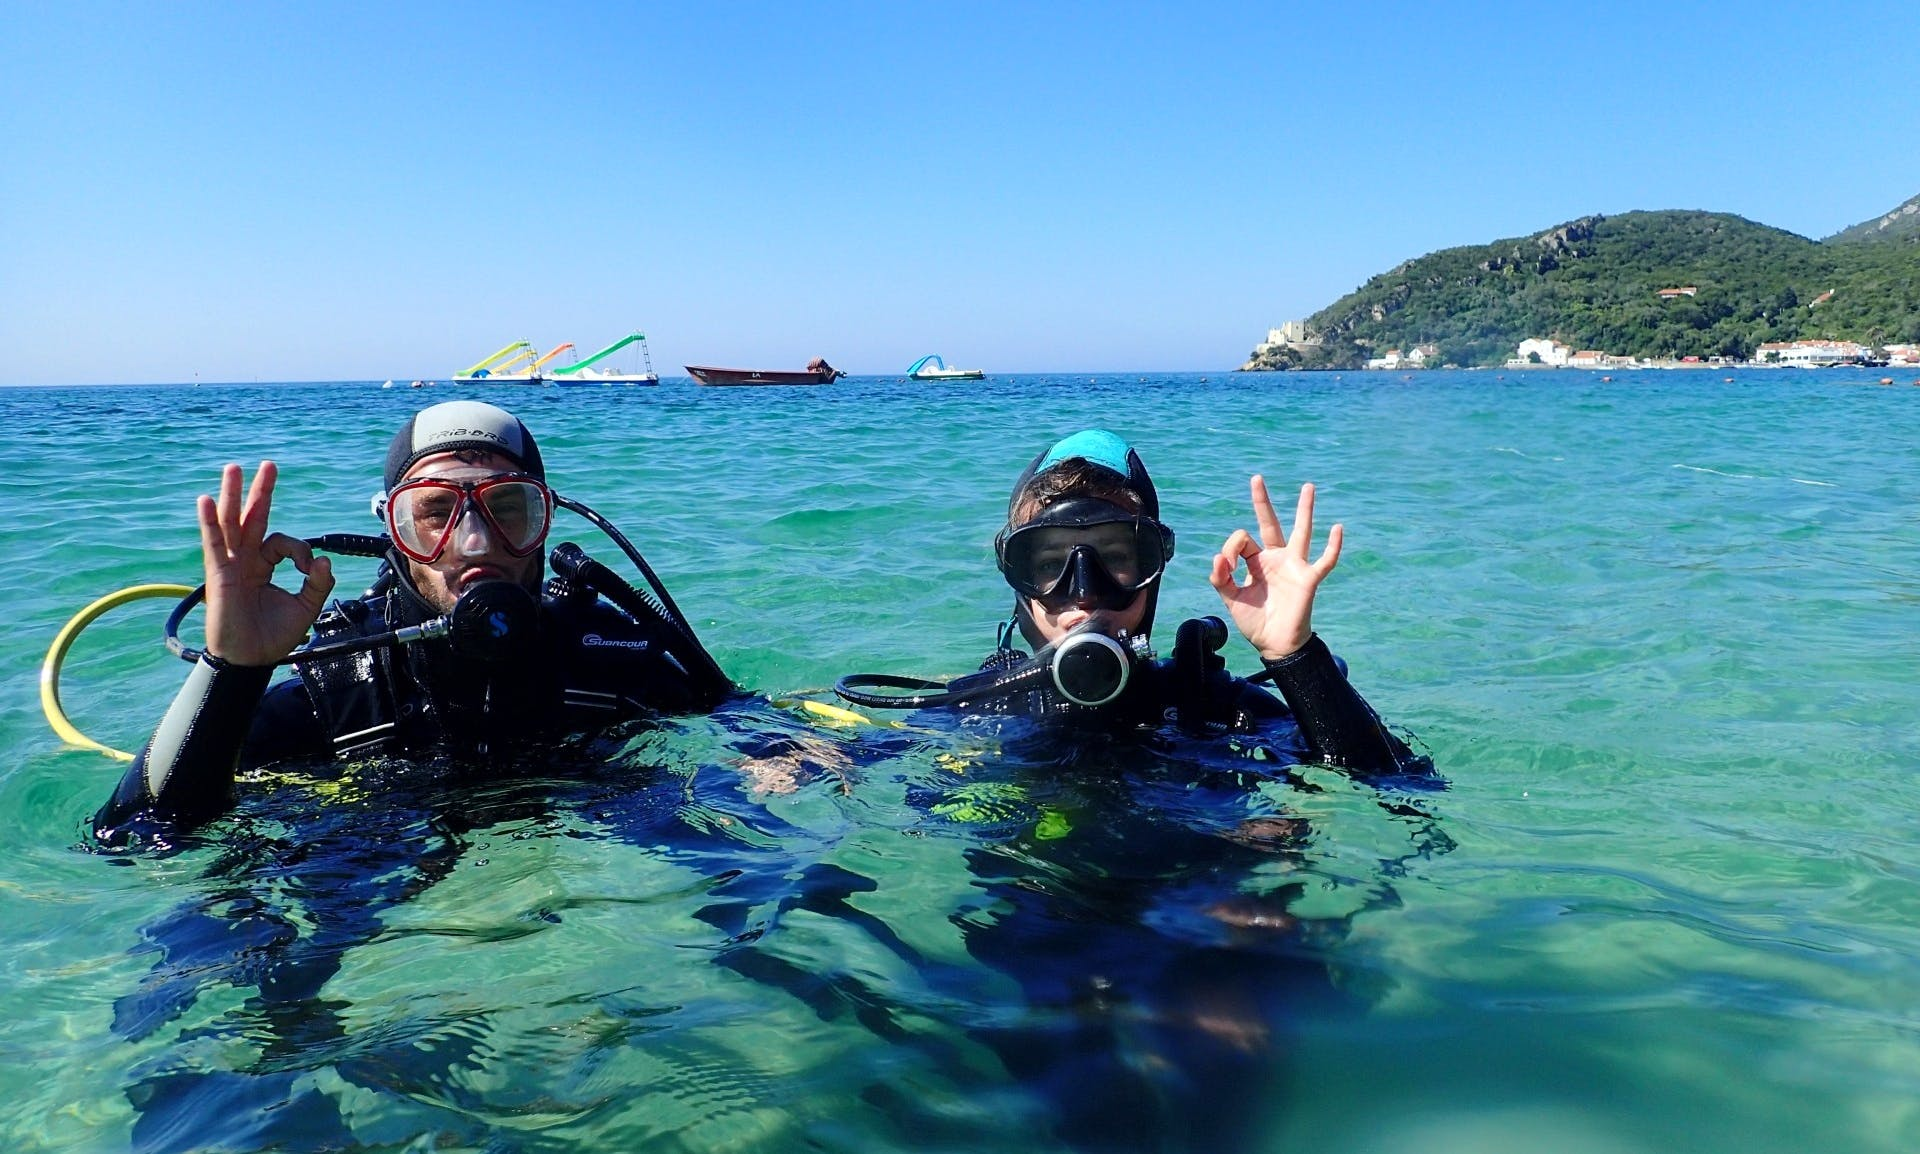 Diving Lesson with Certified Instructor in Baixa da Banheira, Setúbal